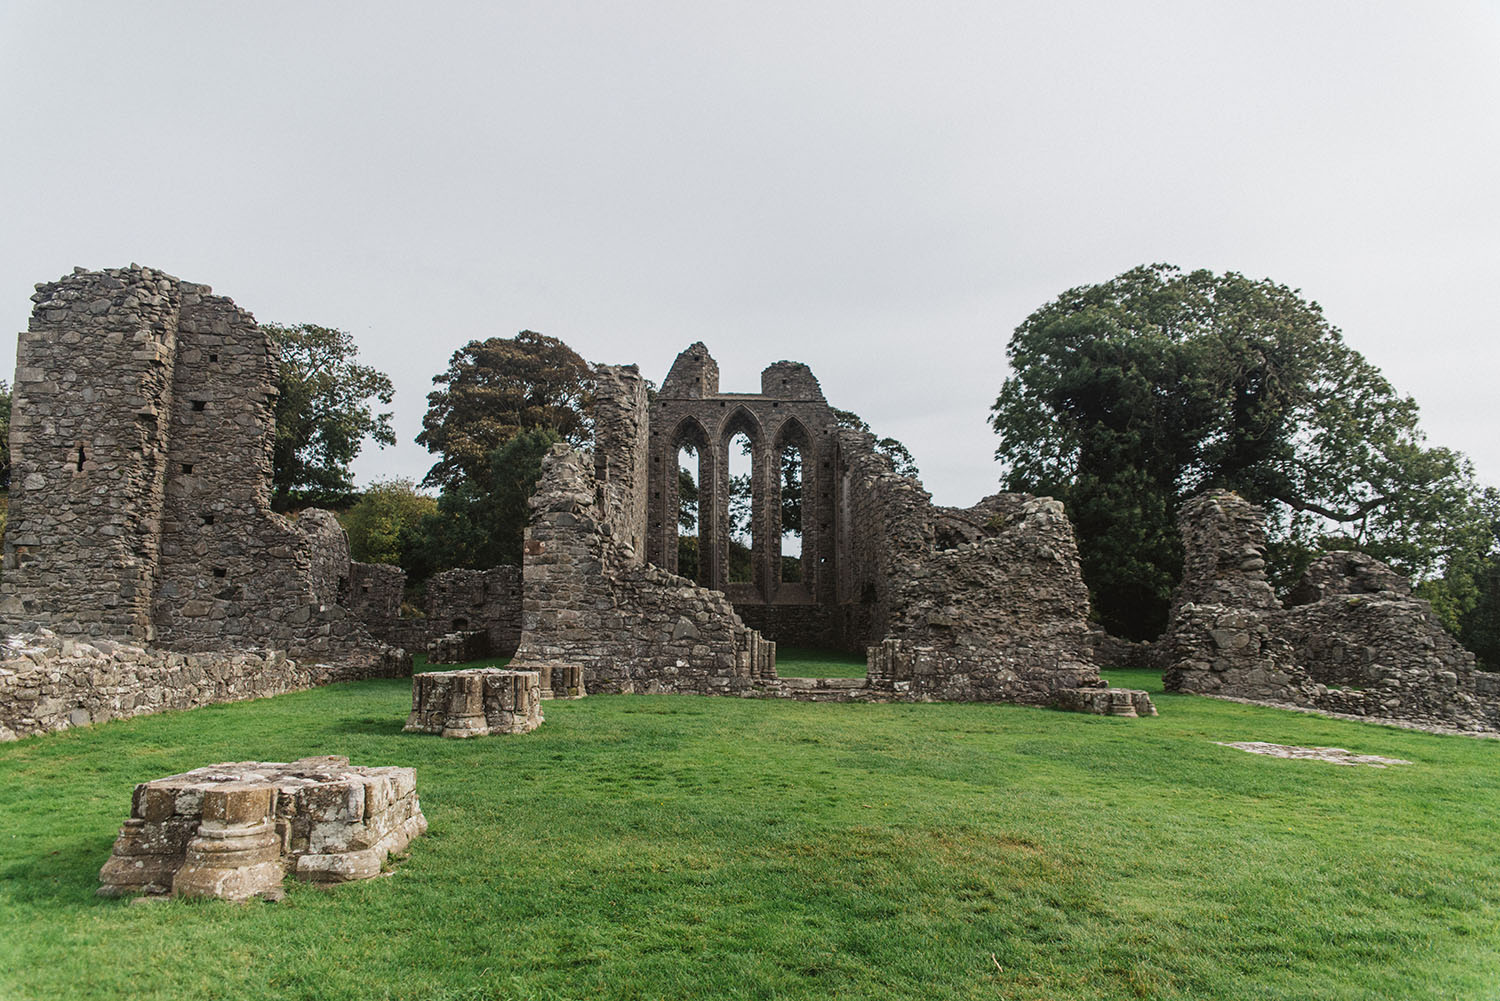 Inch Abbey - The Twins Game of Thrones filming location